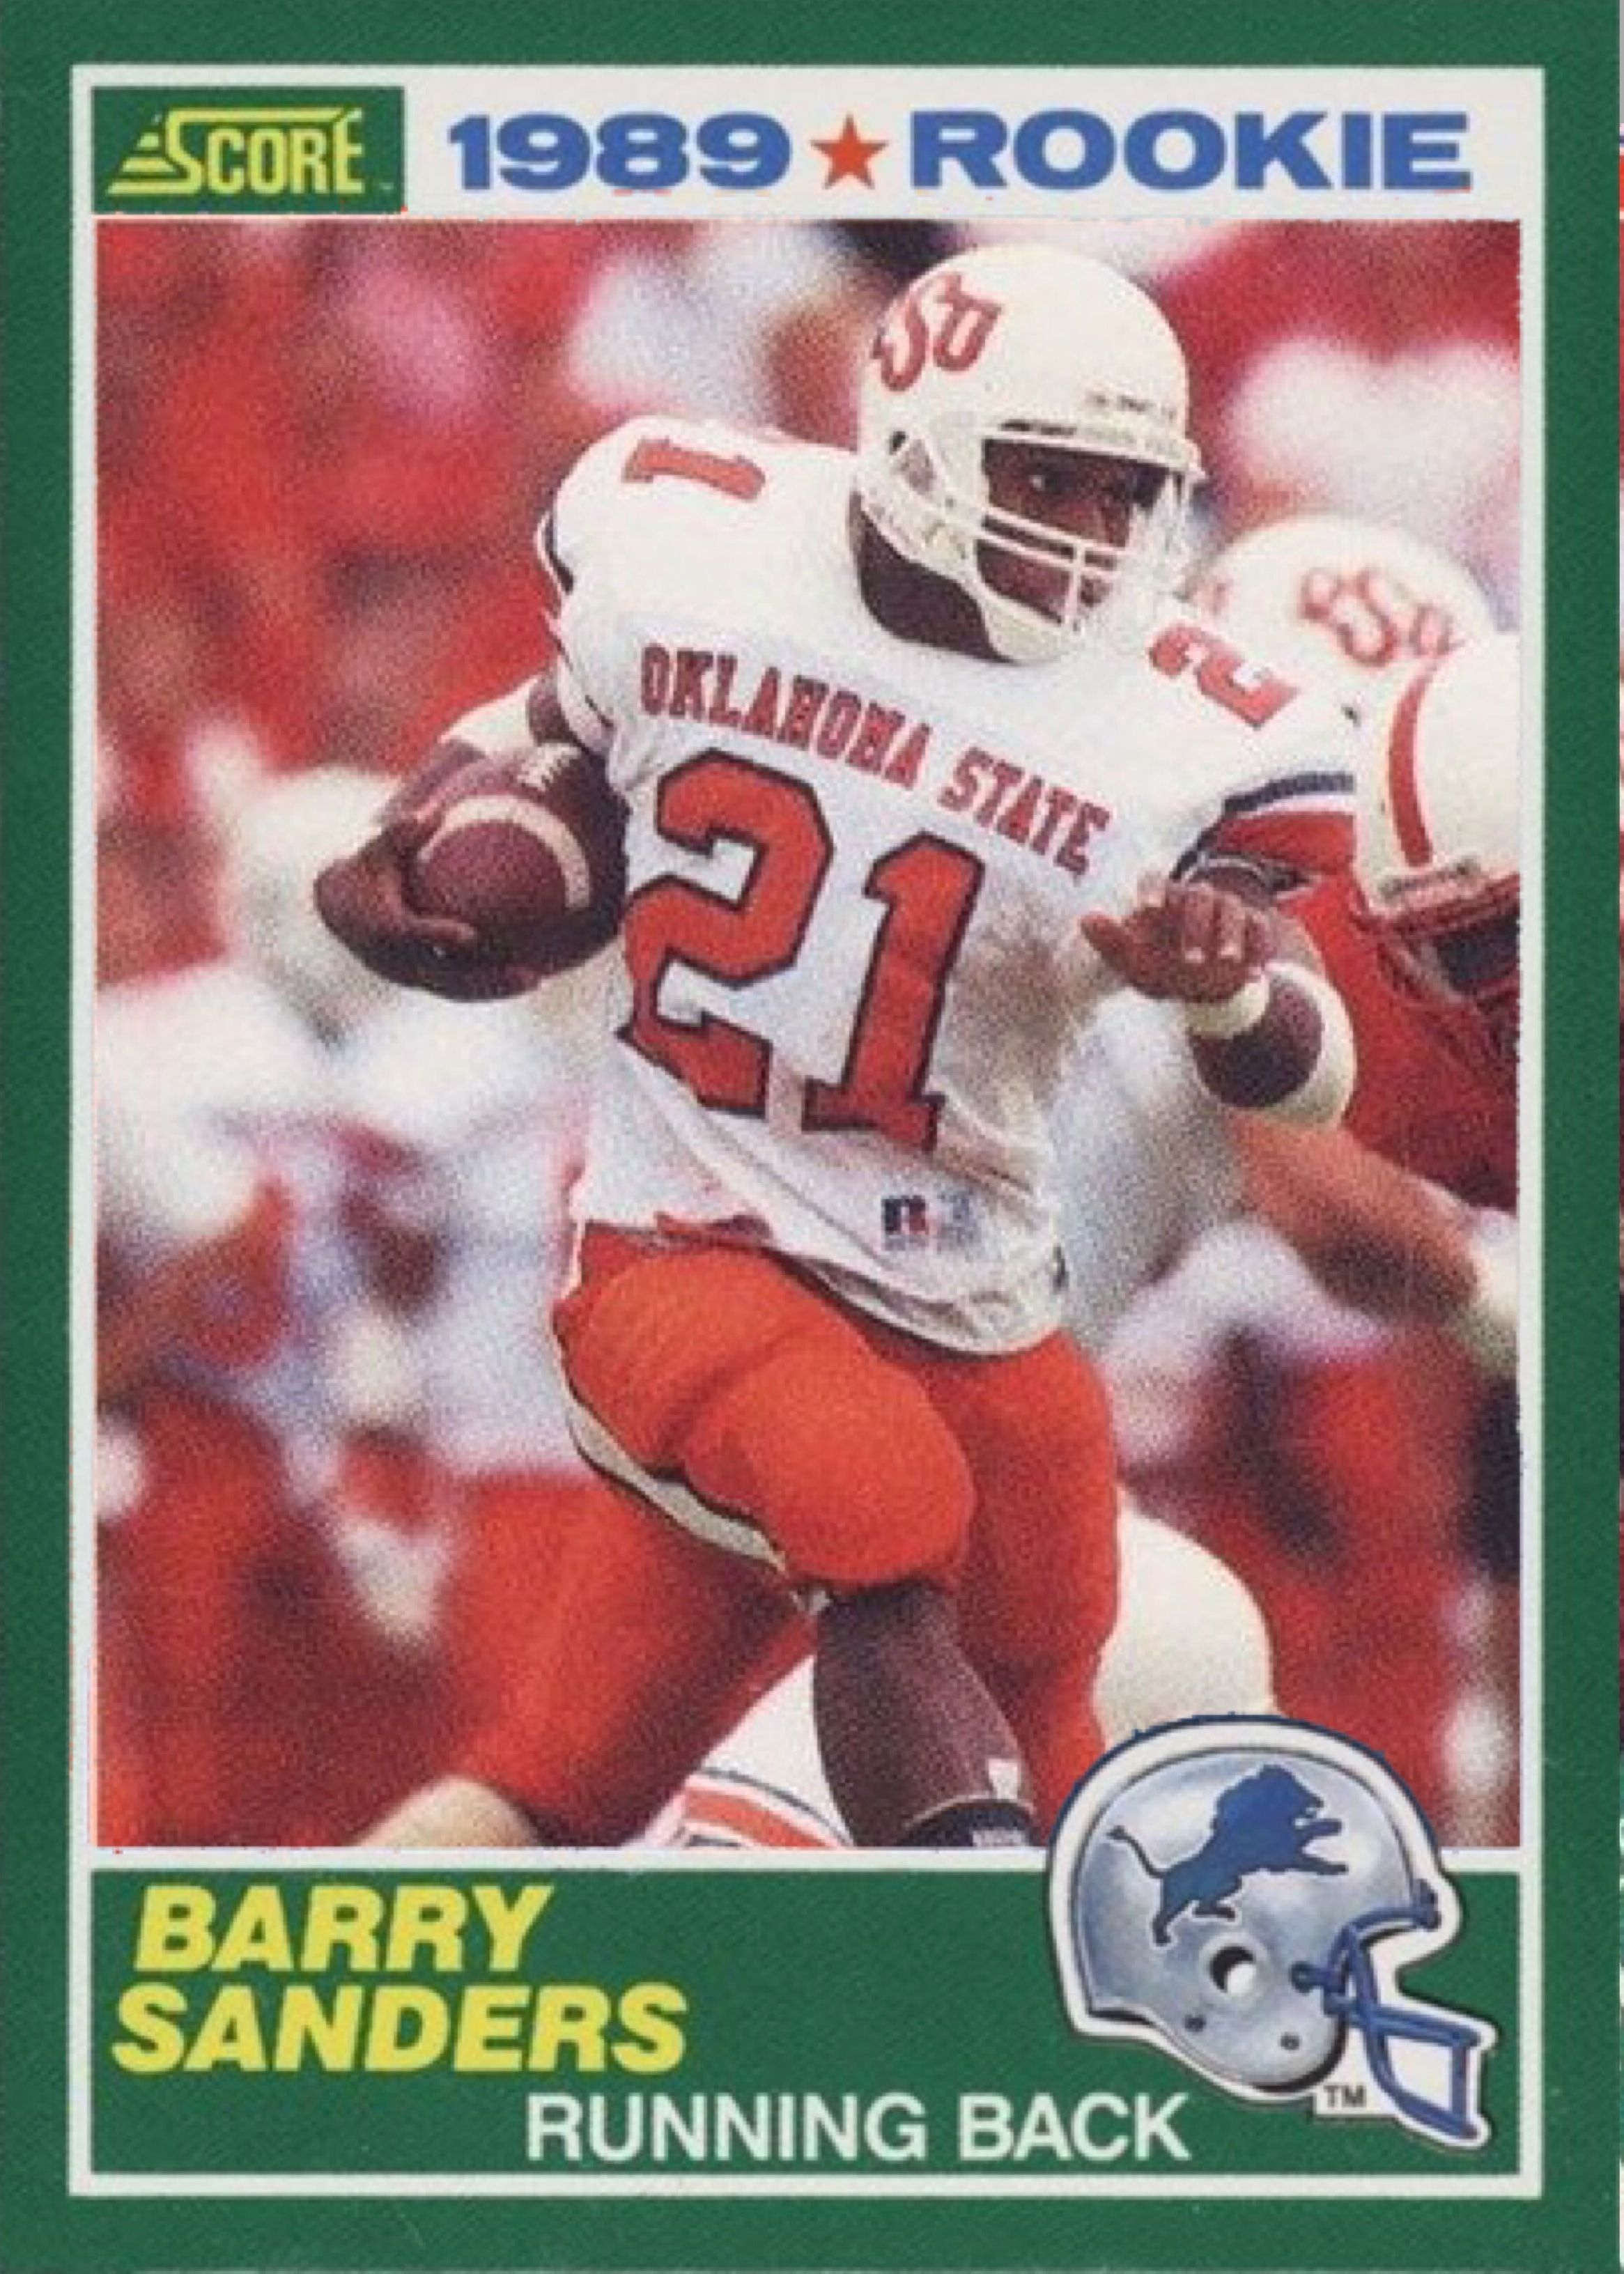 Barry Sanders 1989 Score Pro Set Mashup Customized Pop Culture